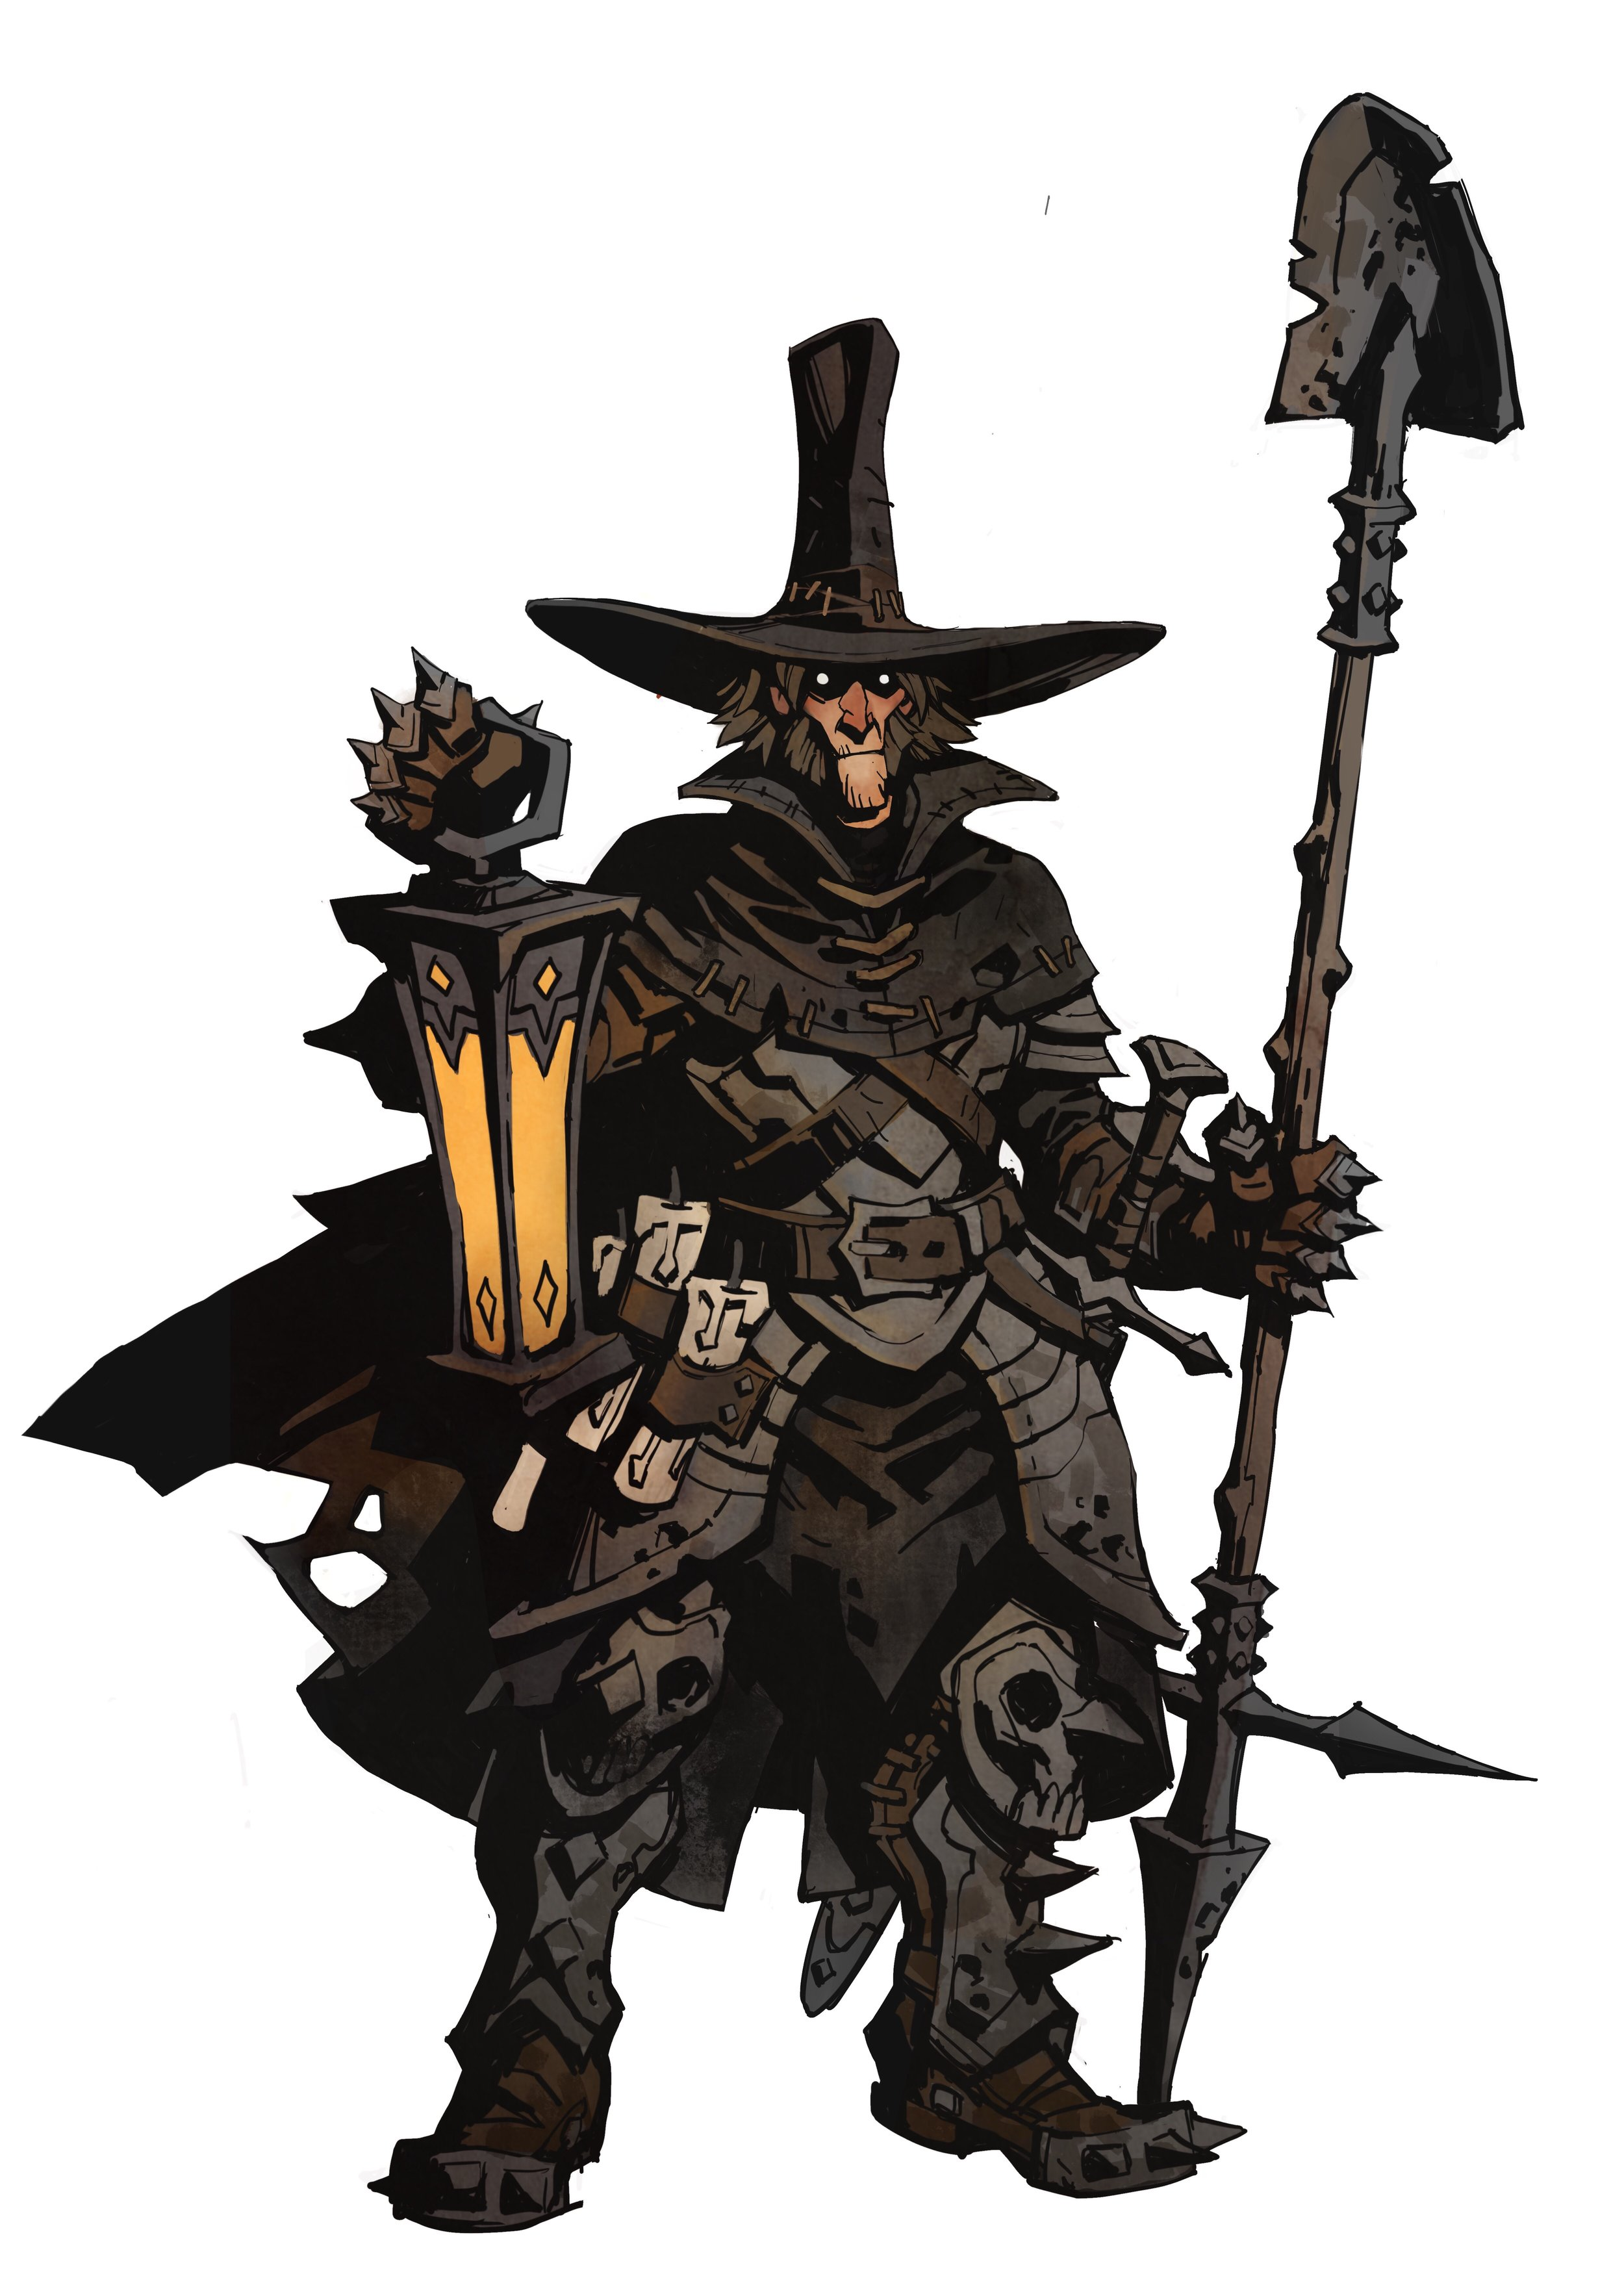 """GRAVE KEEPER FAQ - Q: If I am buried by the Grave Keeper and he is standing on top of my grave, where am I pushed?A: The person digging out of the grave decides where the person on top of them will be pushed. Q: If I am attacked while buried, do I take damage? What if the attack I am hit with has a knock back?A: A player can take damage while buried. If they are hit with a knockback, you will knock/move them underground. Q: If I'm buried, can I attack?A: No, you must dig yourself out (spend 1 MS) to then be able to attack. Q: While buried, can players walk over the buried player?A: Yes. Place a tombstone tile to mark where a player is buried, and then players can walk over the buried Hero.Q: The Artifact """"Temporal Dagger"""" allows a hero to switch spots with an enemy or teammate… can this be used while I'm buried to put my opponent underground and me above ground?A: Hell yes."""